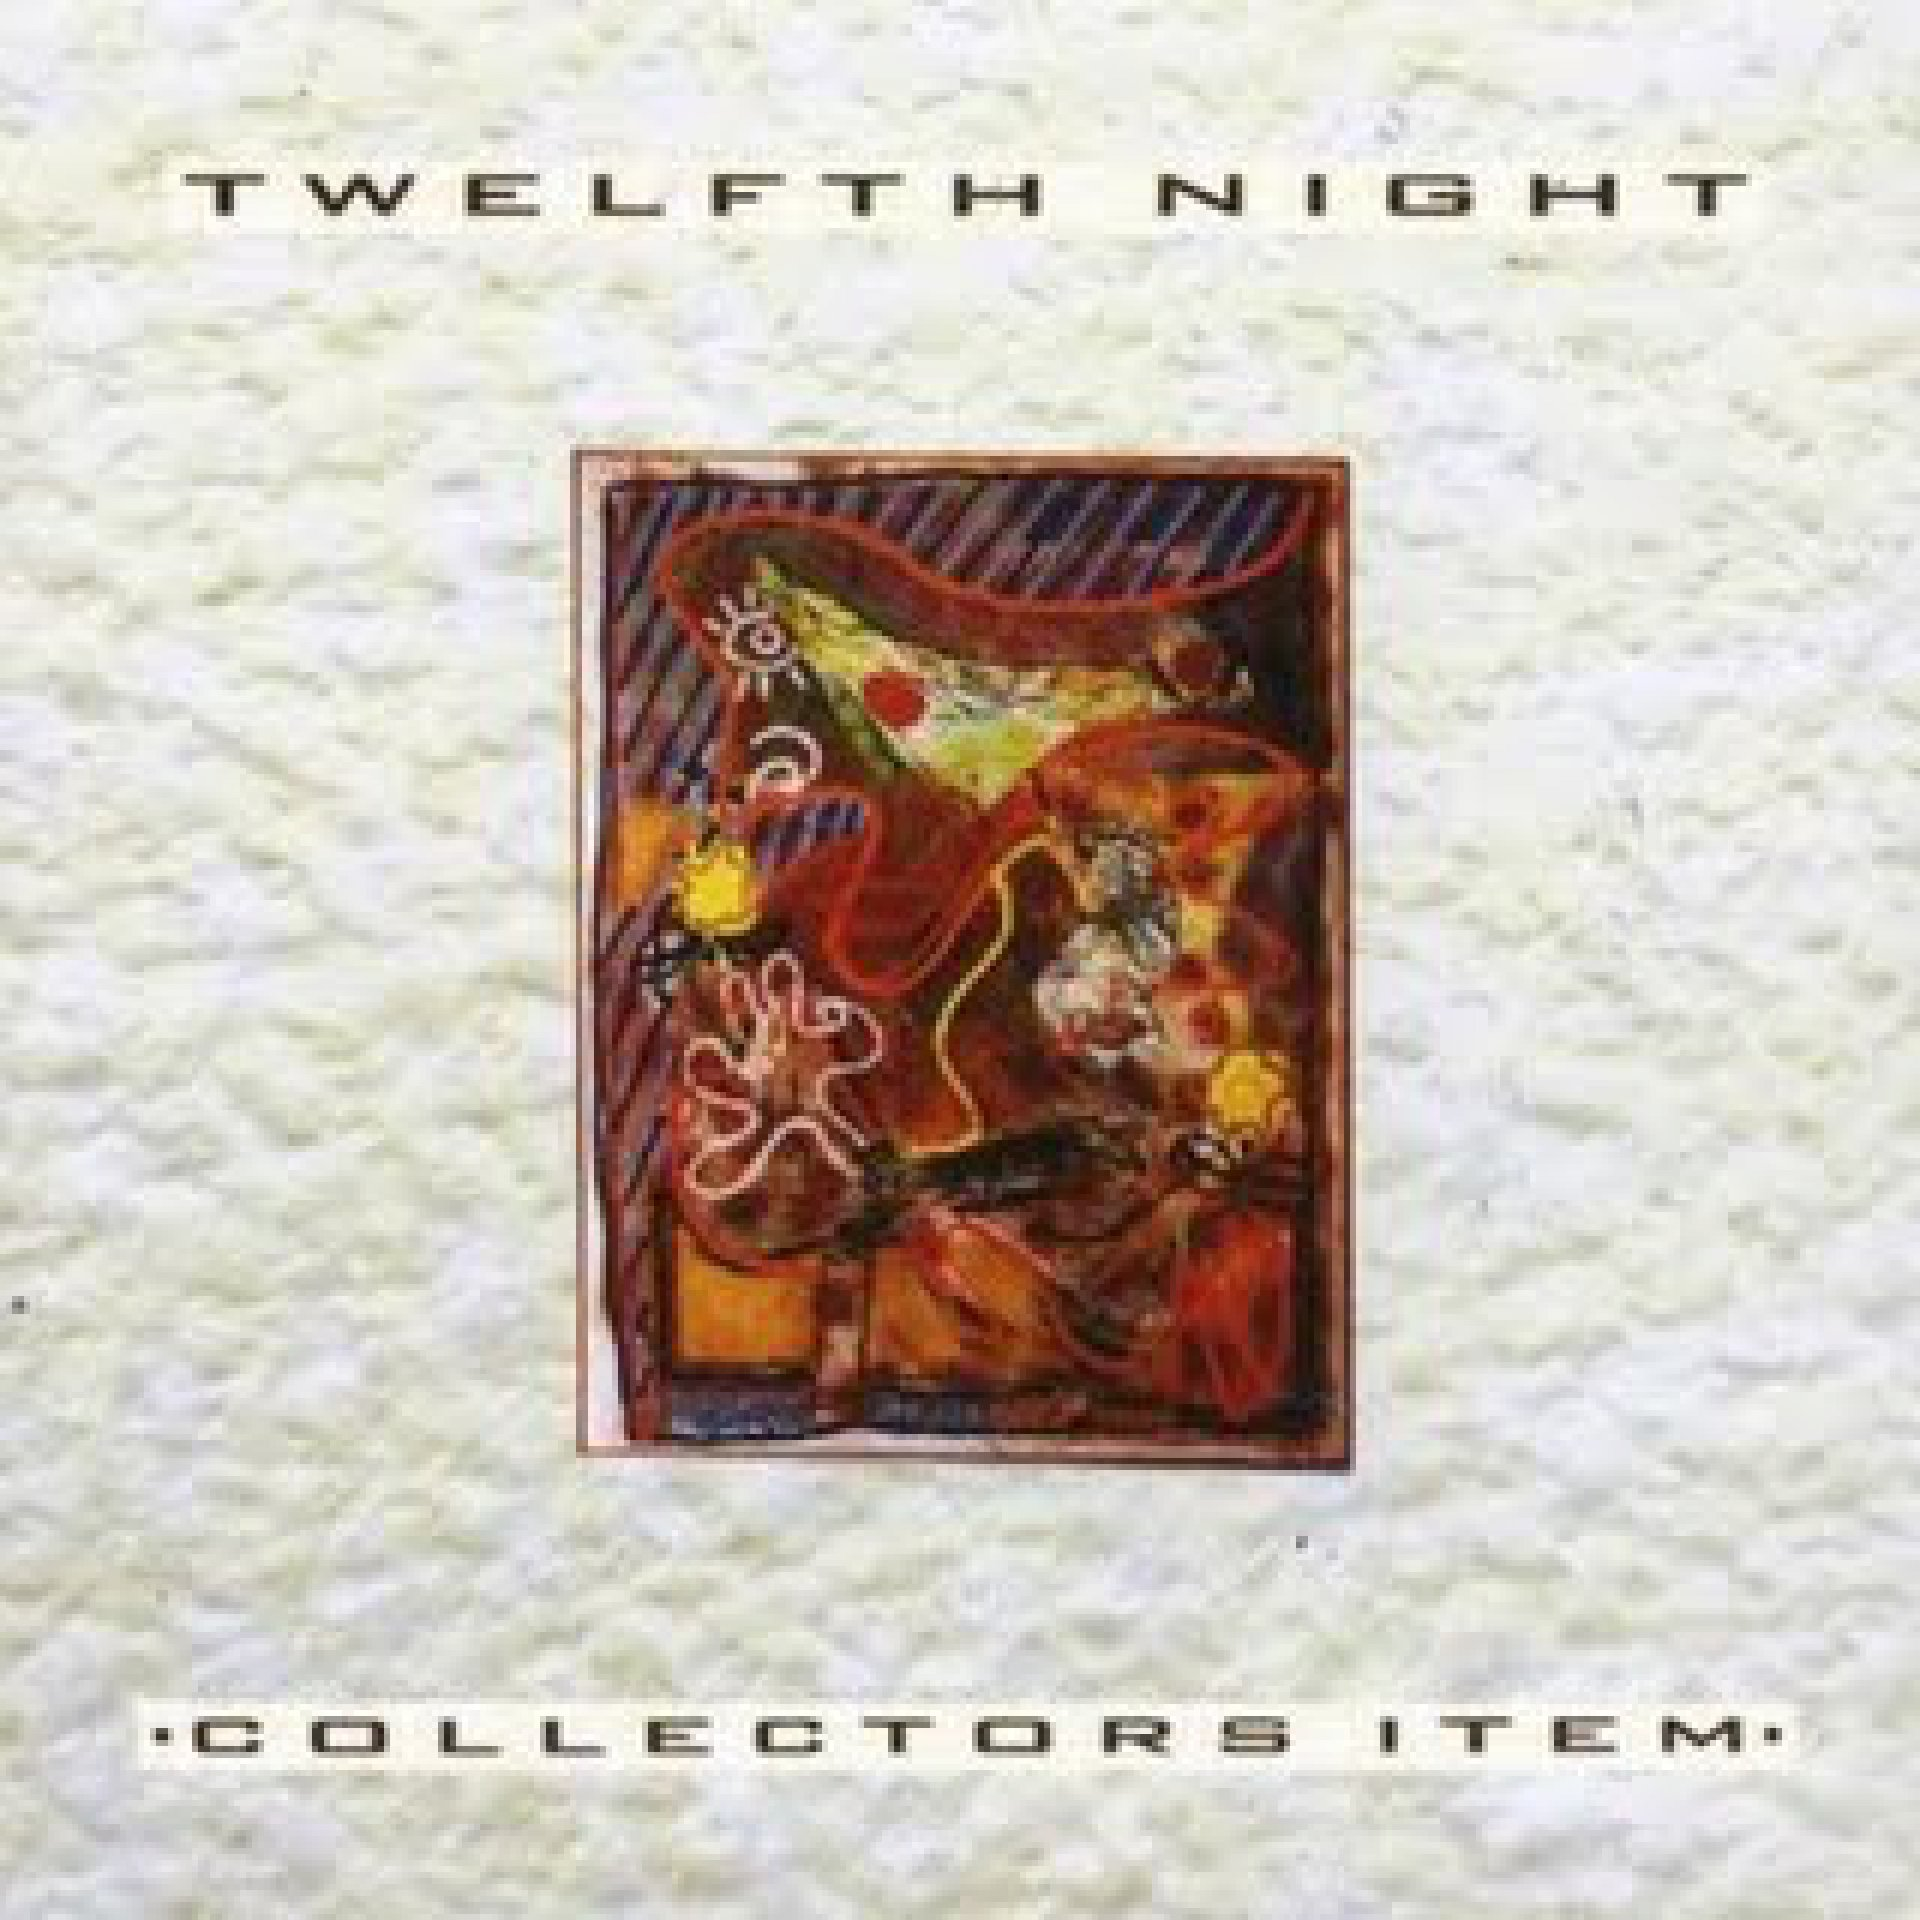 Twelfth Night - Collector's Item